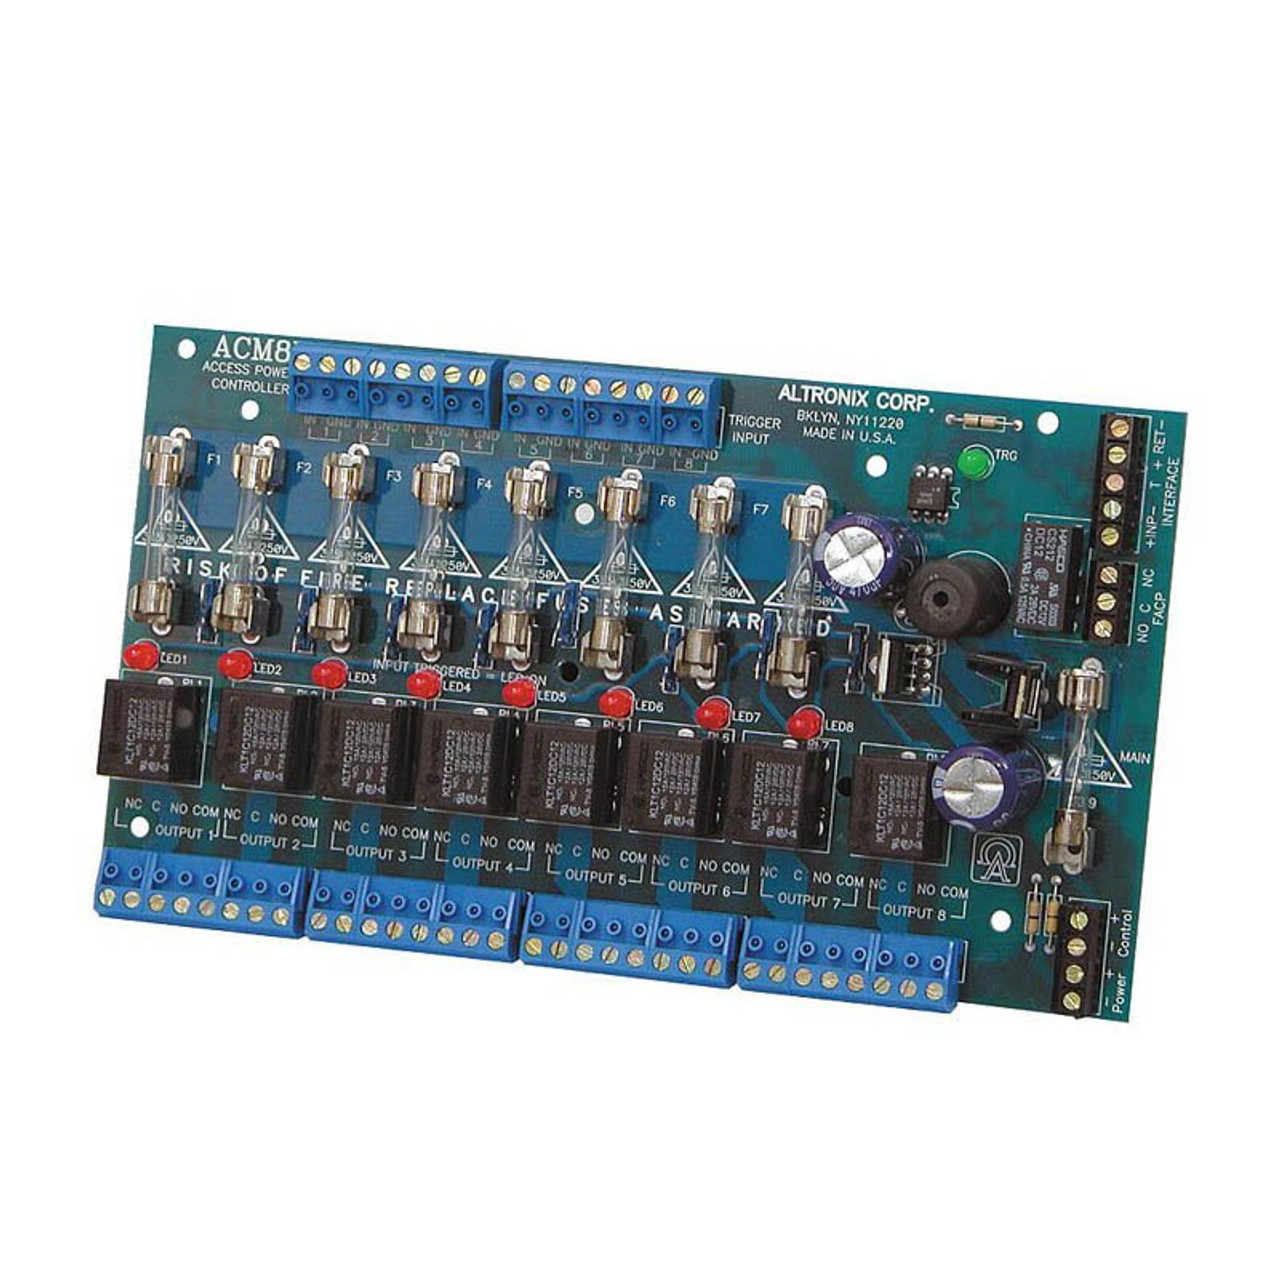 ALTRONIX ACM8 Access Power Controller 8 Fused Trigger